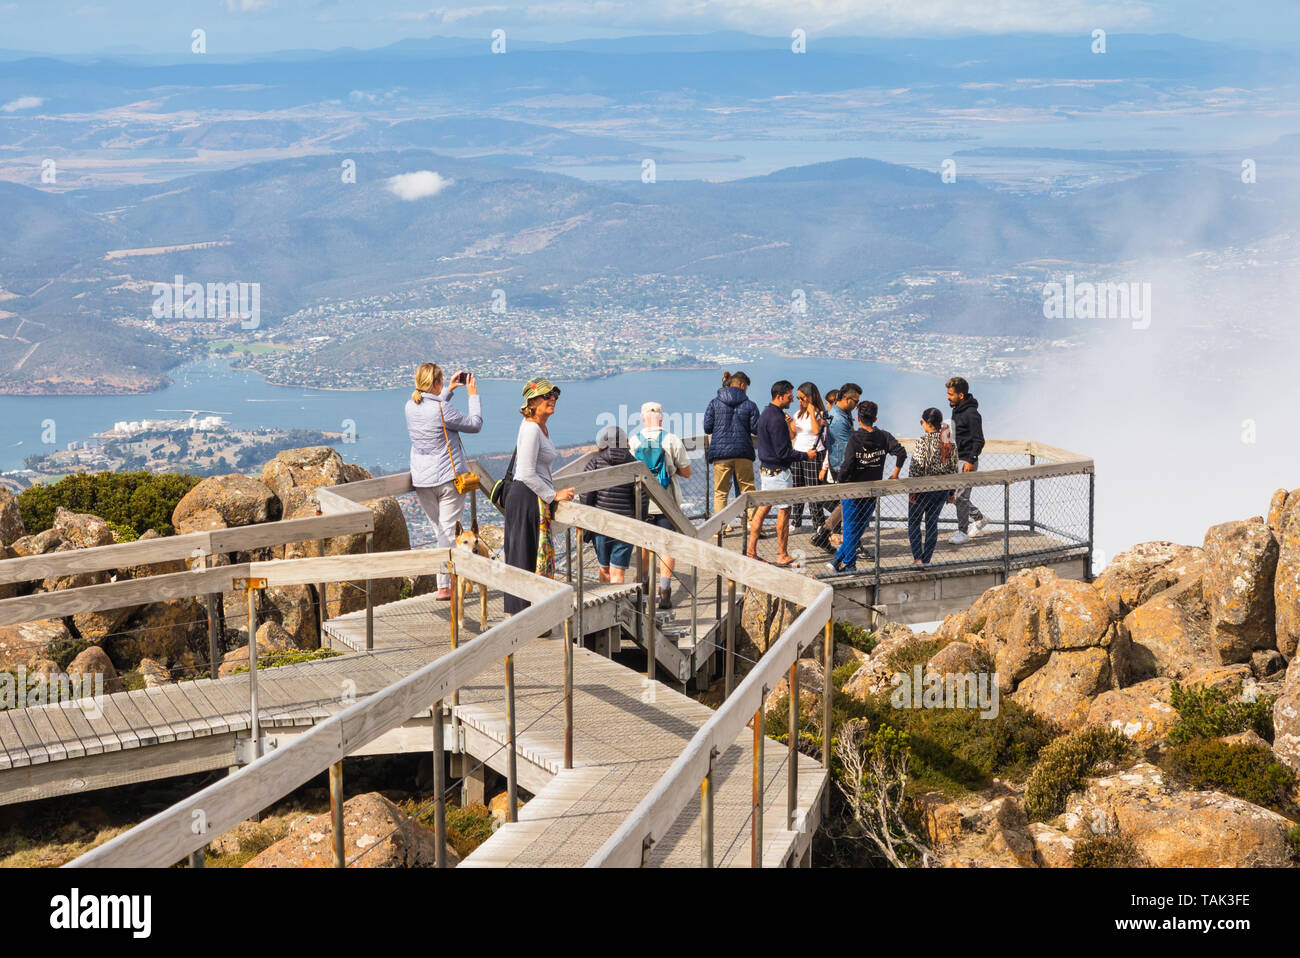 TASMANIA, AUSTRALIA - FEBRUARY 16, 2019: Tourists on a viewing platform on top of Mount Wellington, looking at Hobart, the capital city of Tasmania in Stock Photo